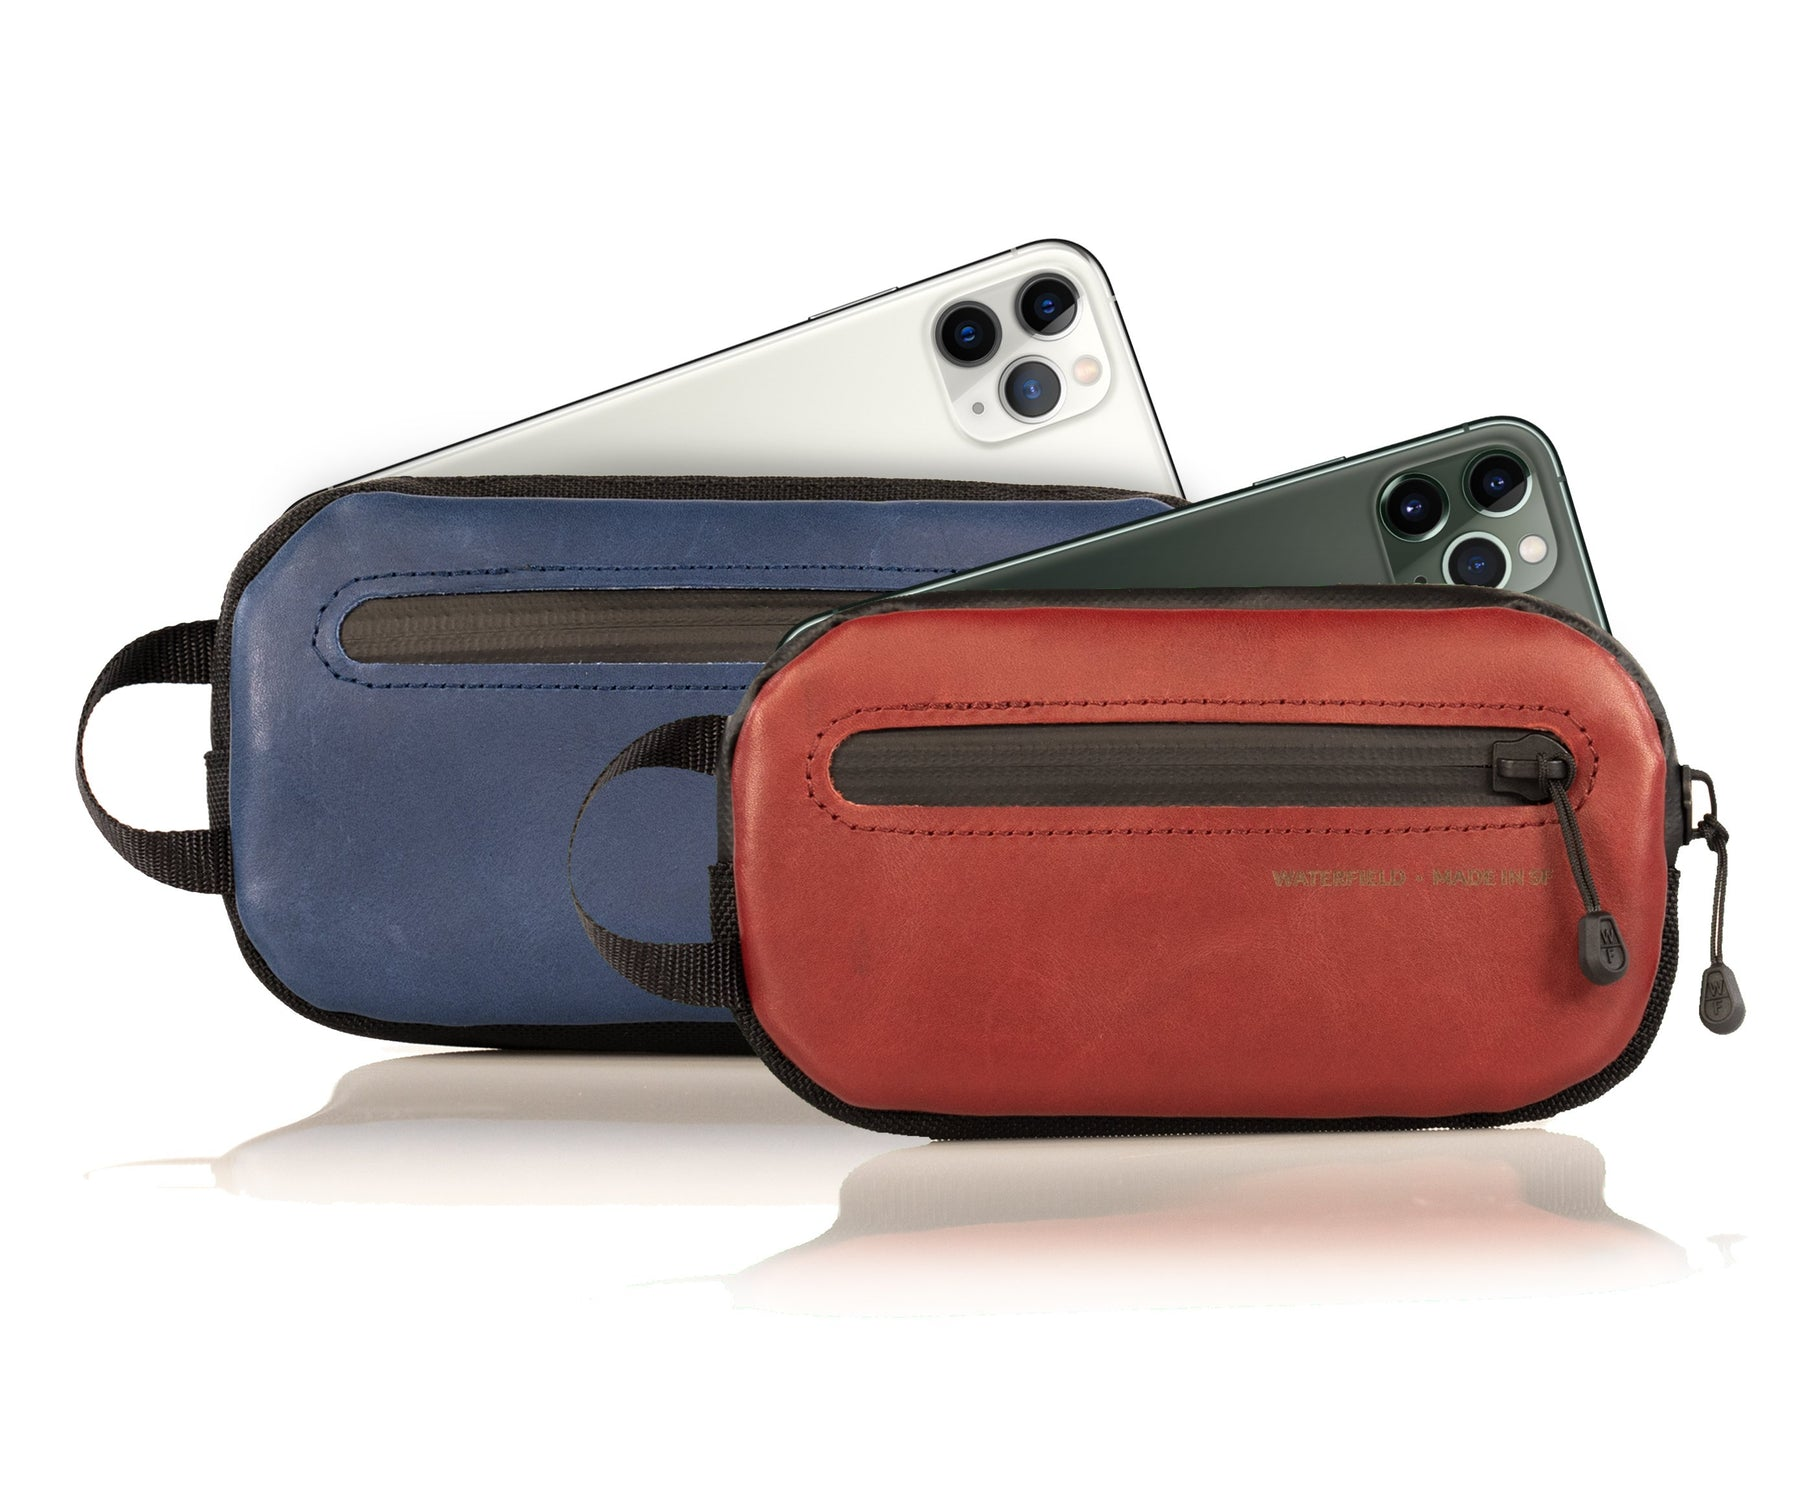 Jersey Pocket Tool Case Stylishly Stows iPhone, Cycling Tools, Cash, Key Image